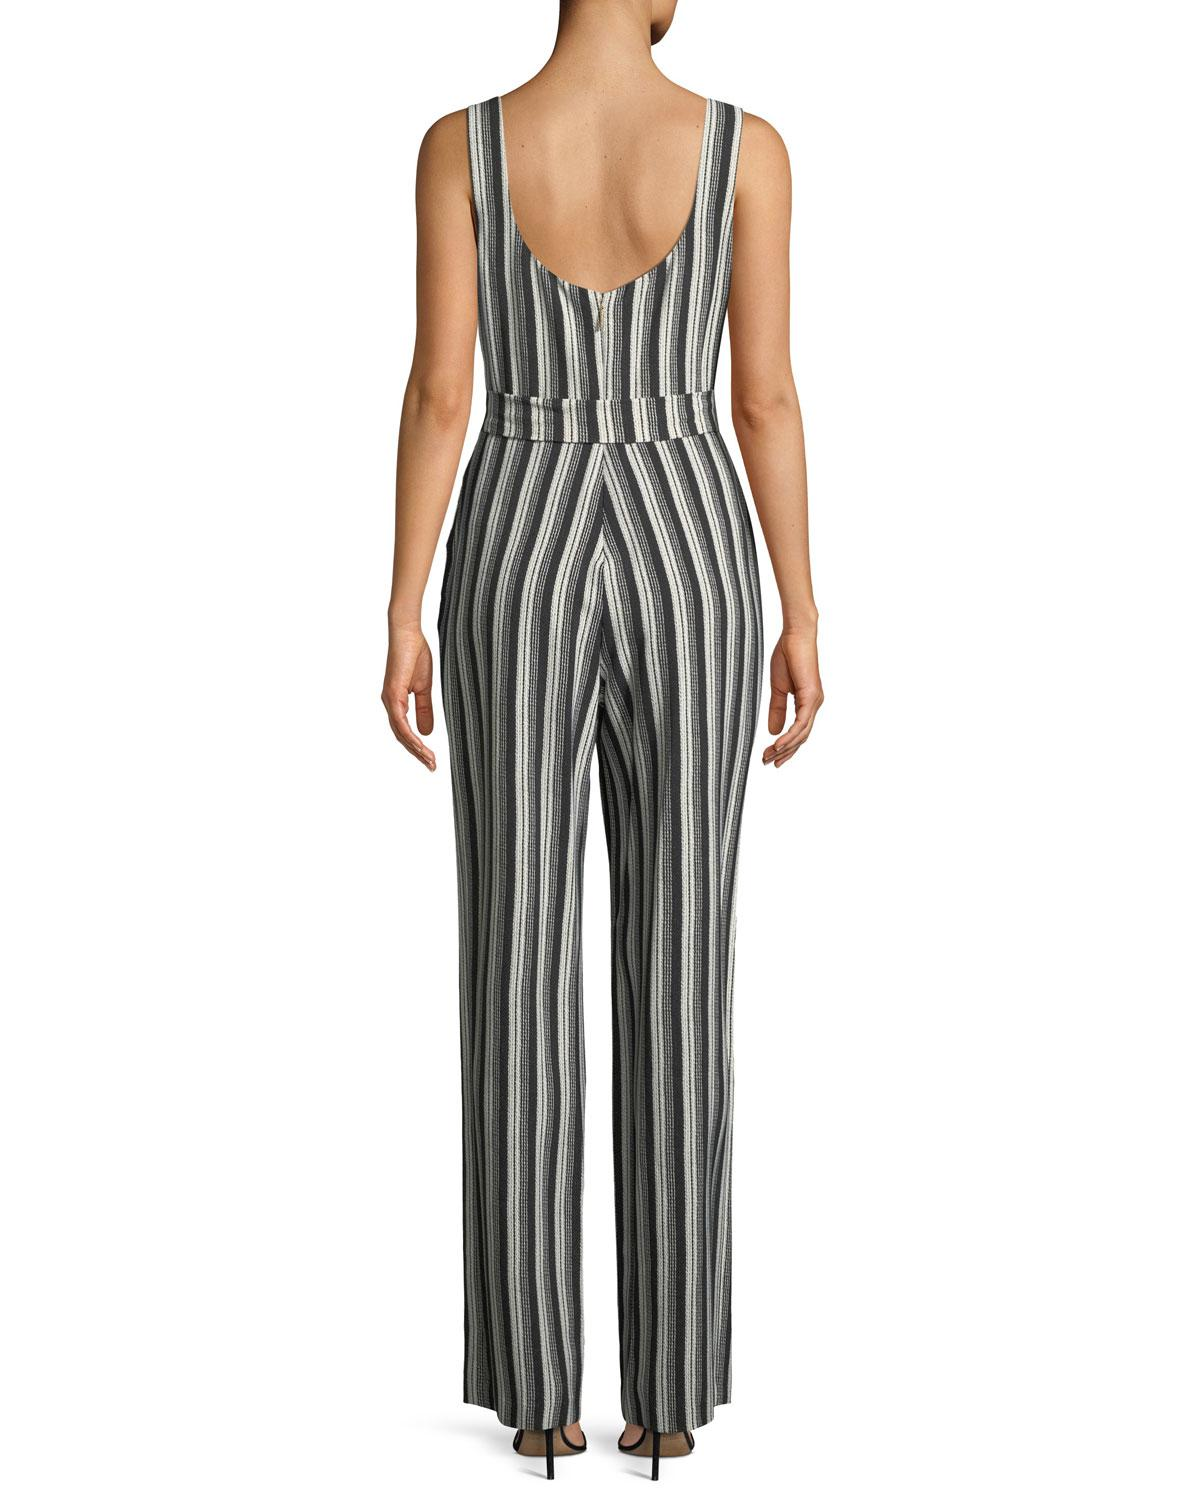 f42eac195790 Lyst - Karl Lagerfeld Striped Belted Jumpsuit in Black